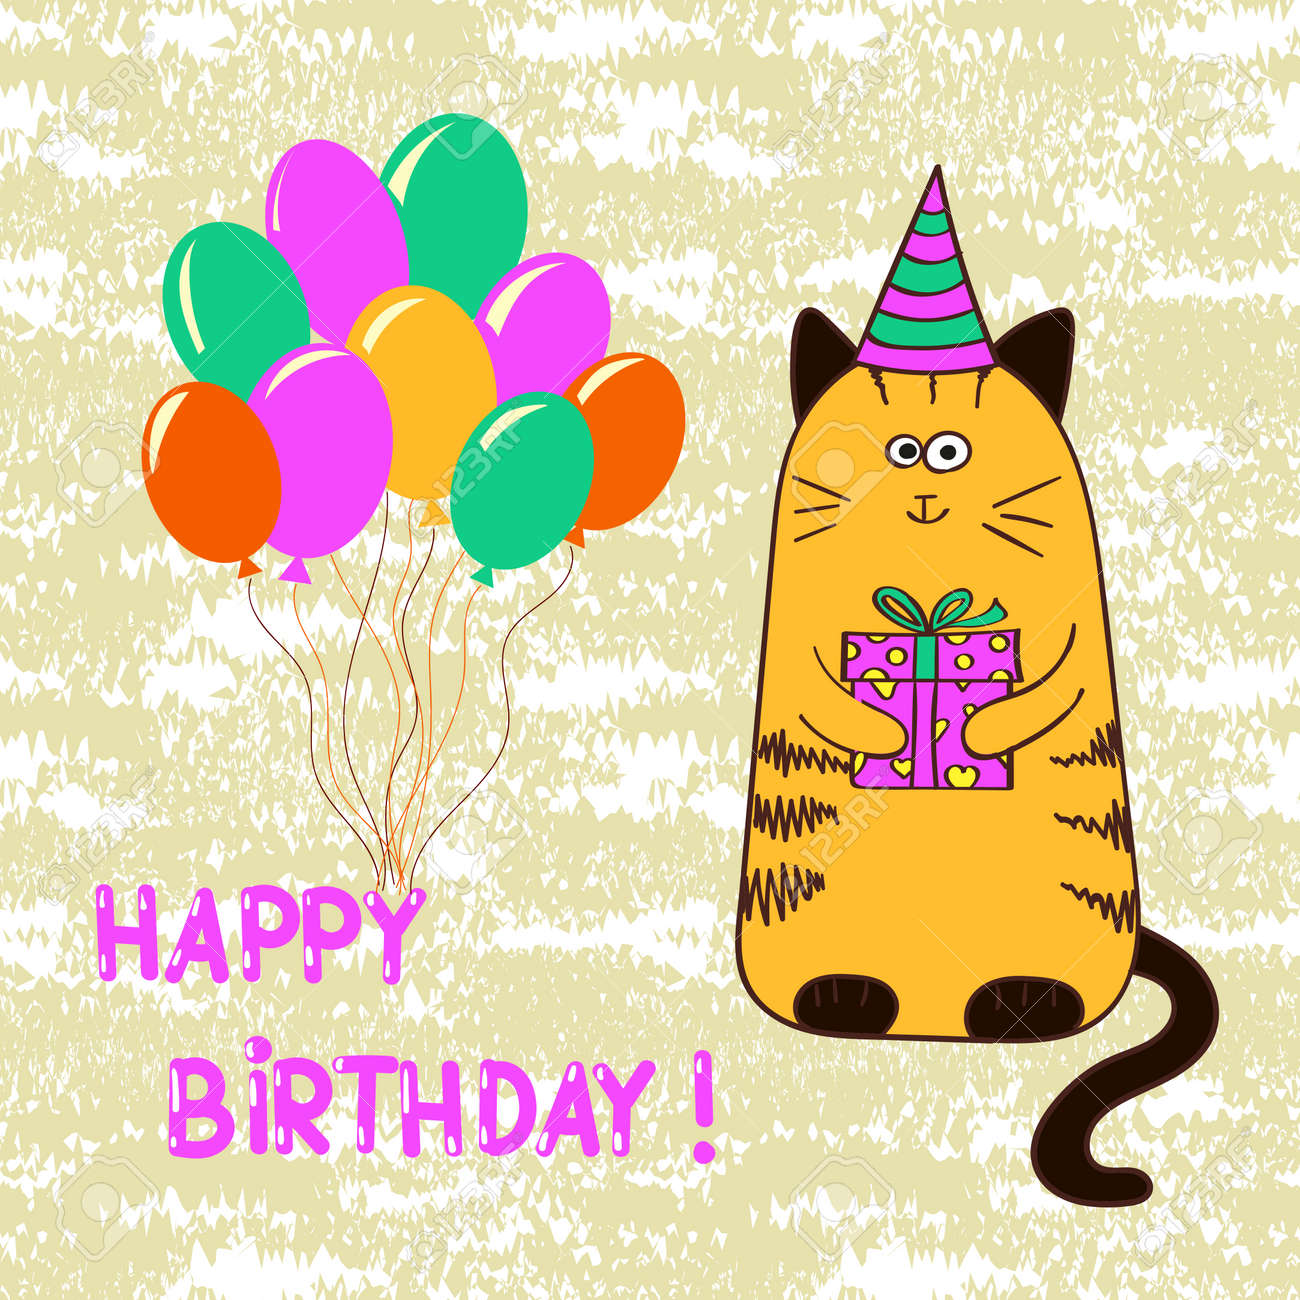 Happy Birthday Card Template With Cute Cat Vector Illustration Stock